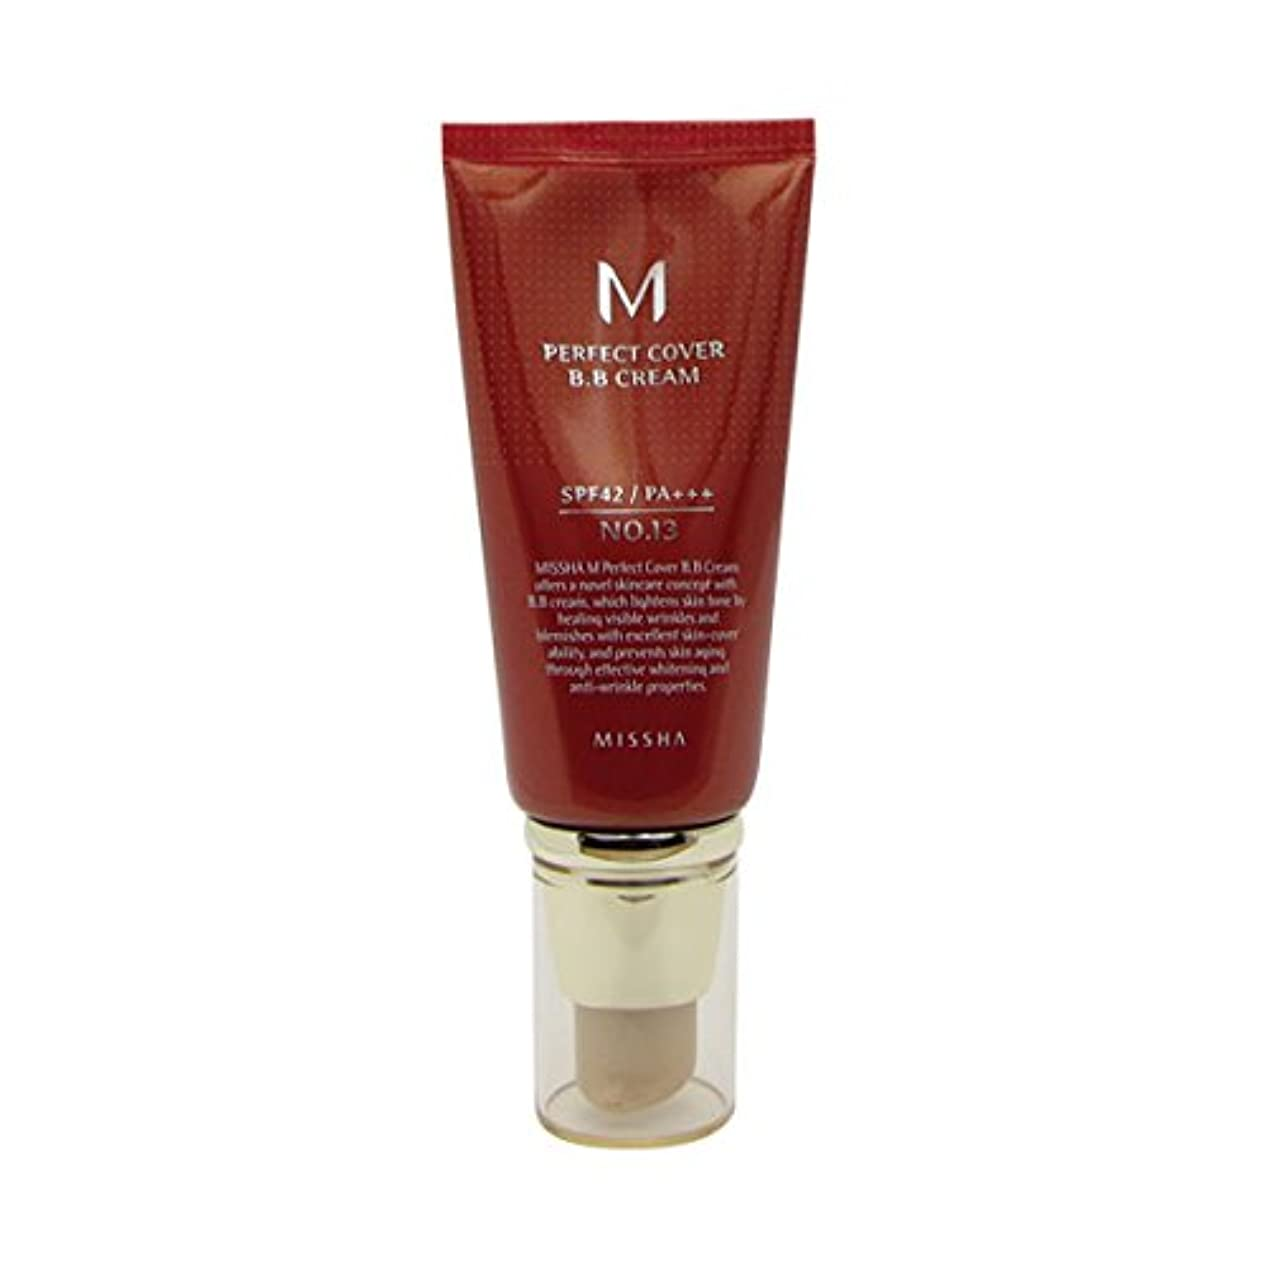 イサカ努力脈拍Missha M Perfect Cover Bb Cream Spf42/pa+++ No.13 Bright Beige 50ml [並行輸入品]